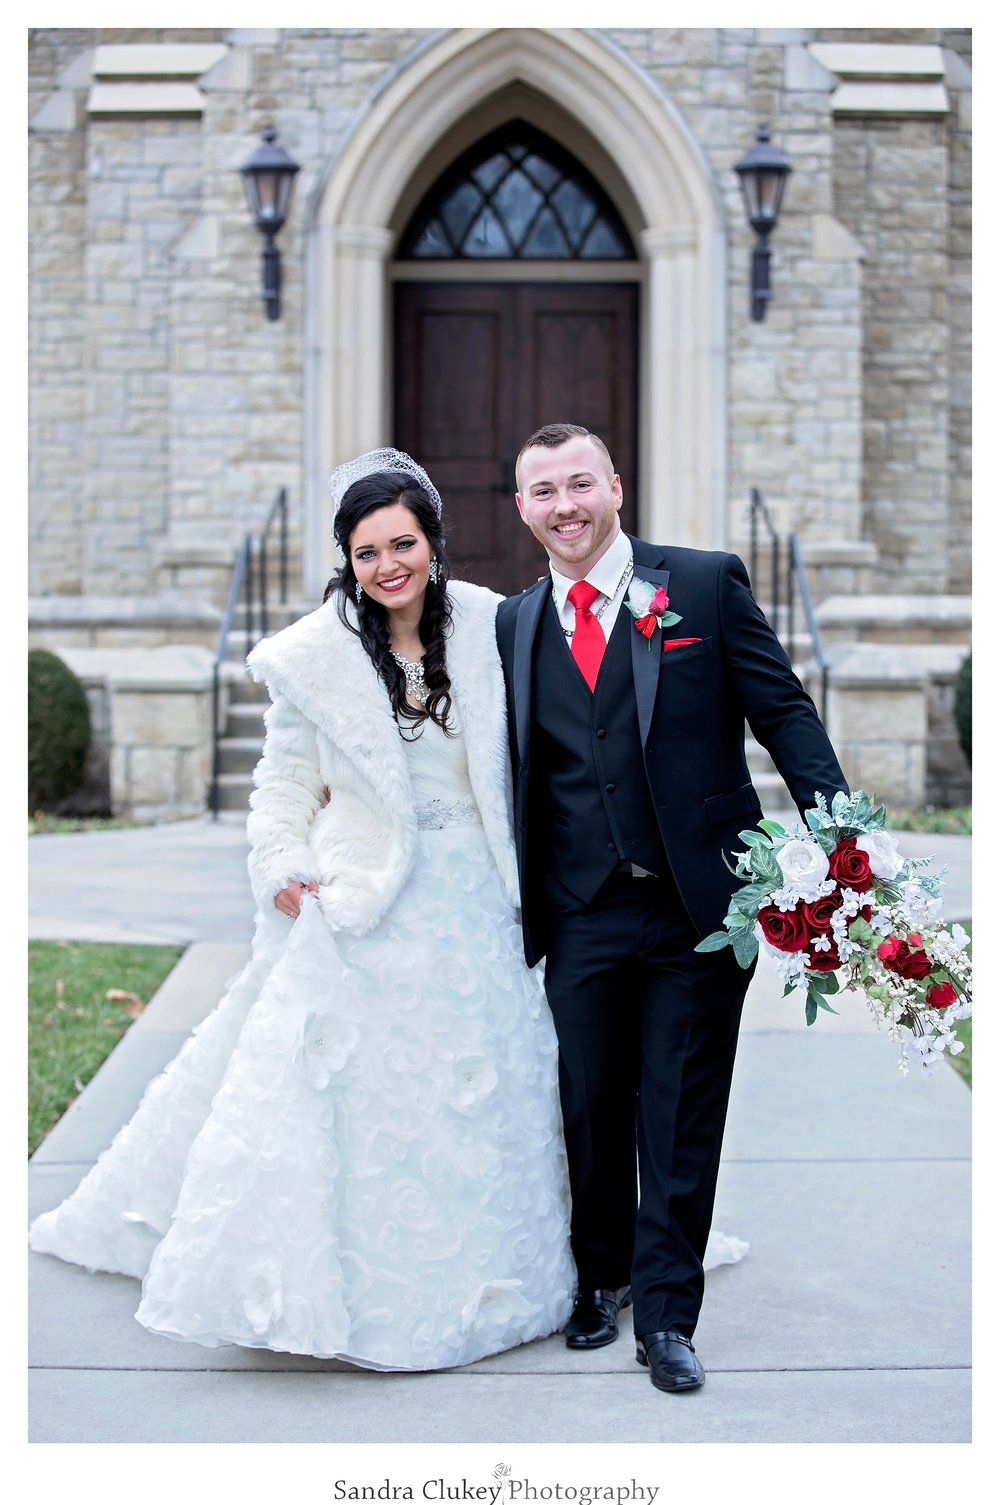 Lovely bride and groom on wedding day in front of  Lee University chapel, Cleveland TN.